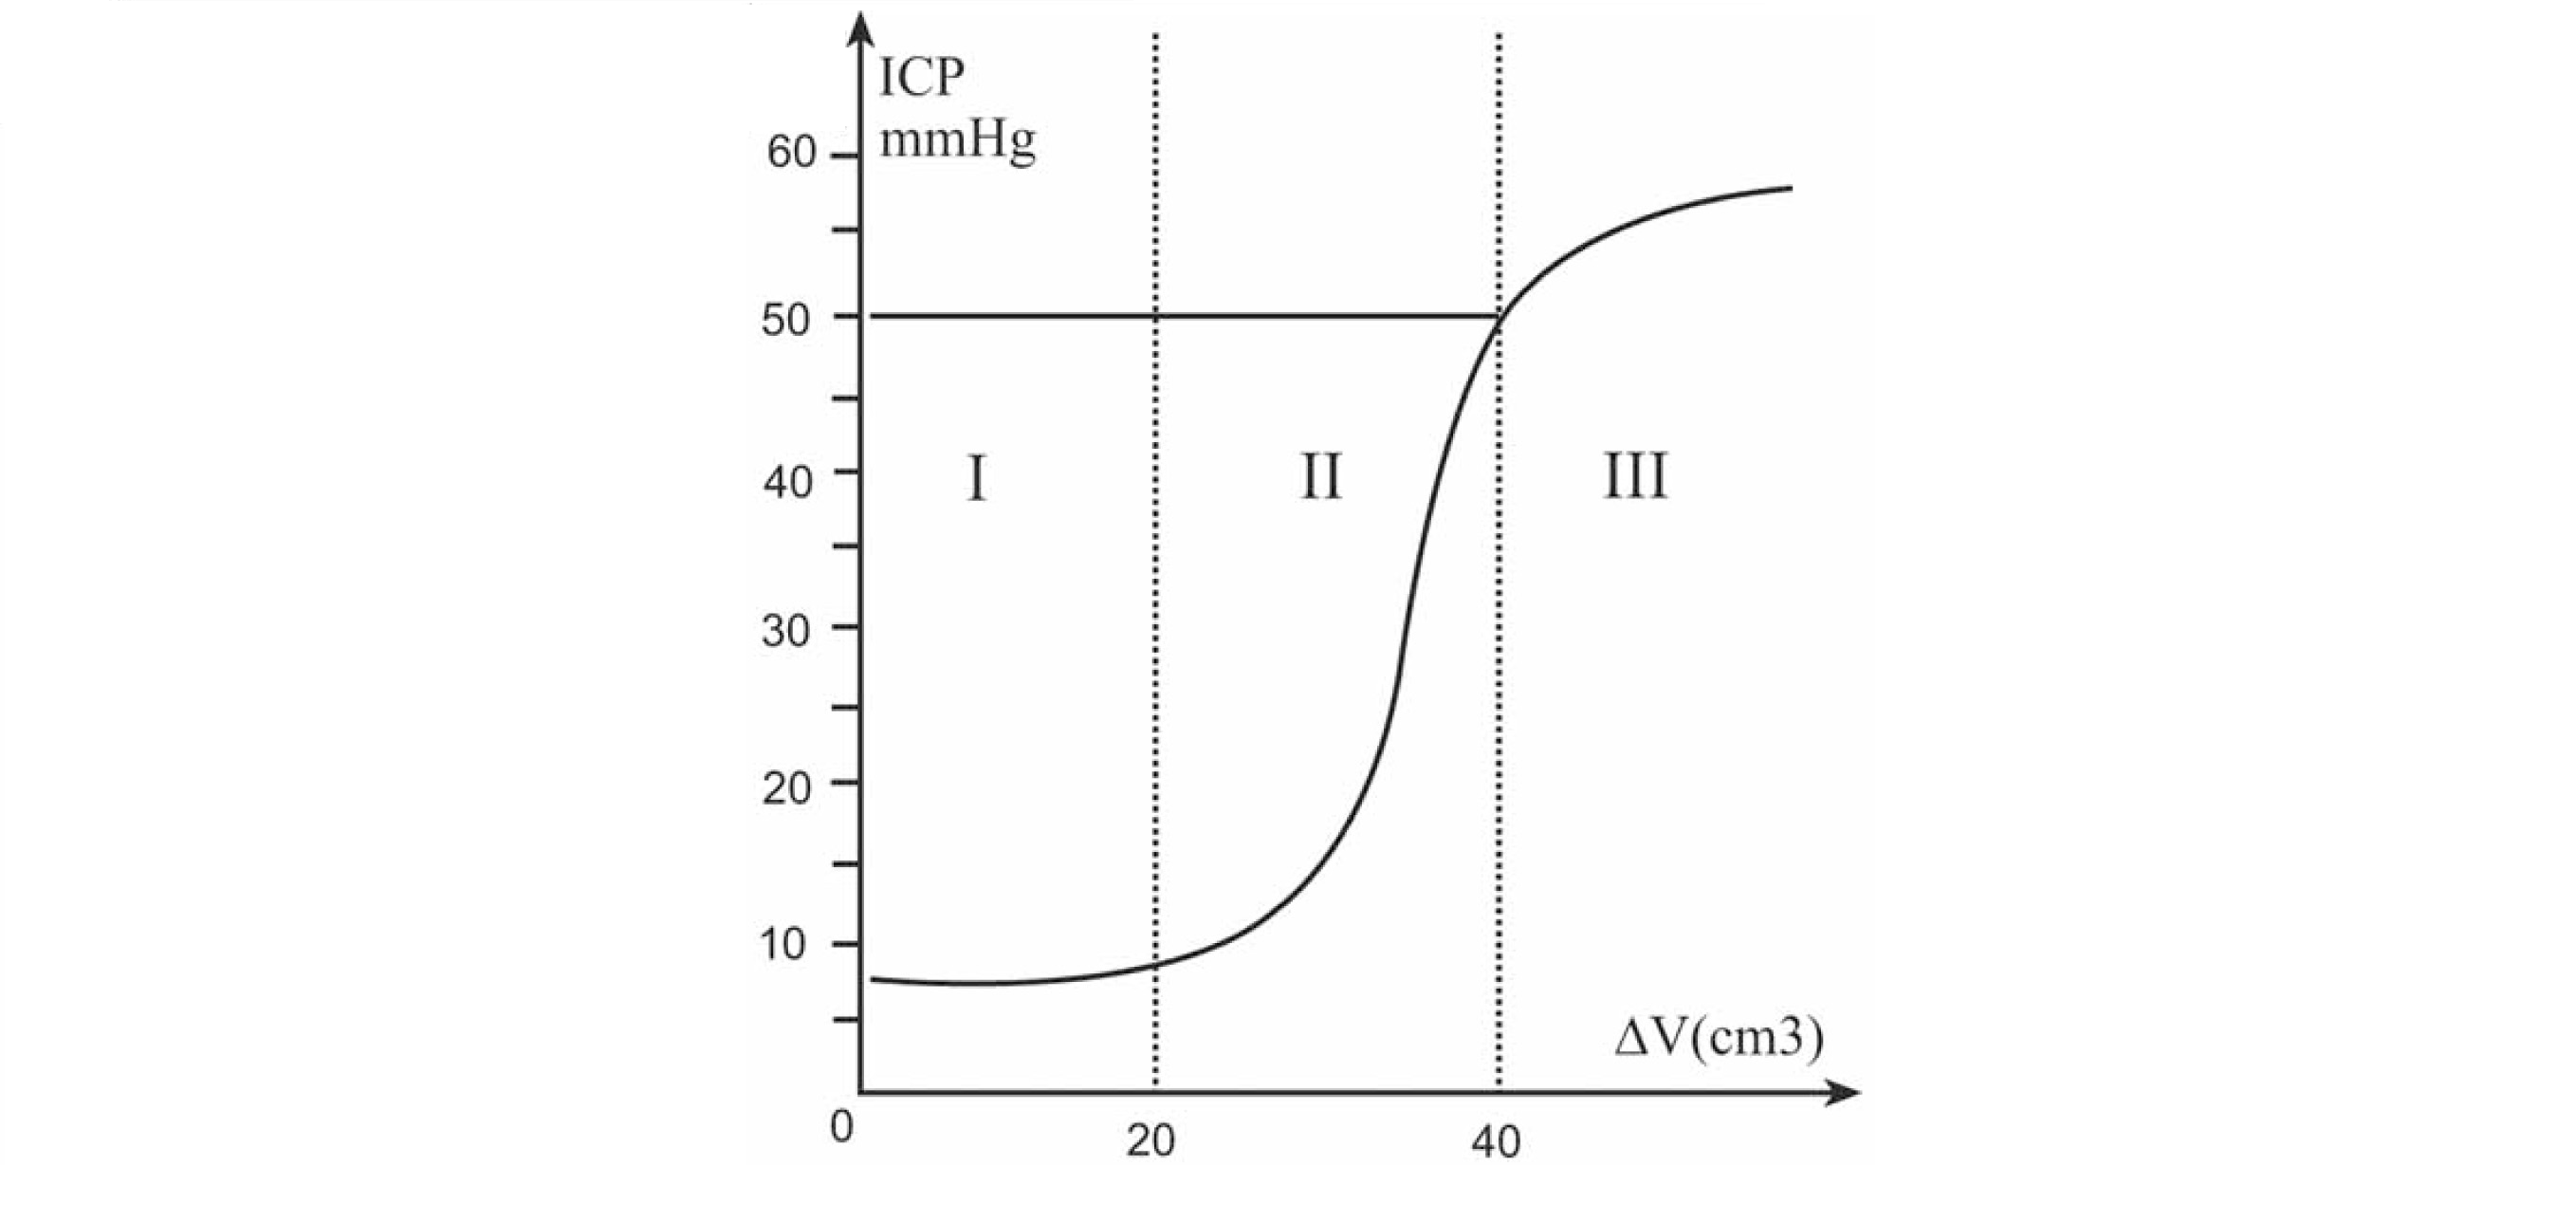 Pressure-Volume curve showing the intracererbal volume changes and the corresponding intracranial pressure (ICP) changes